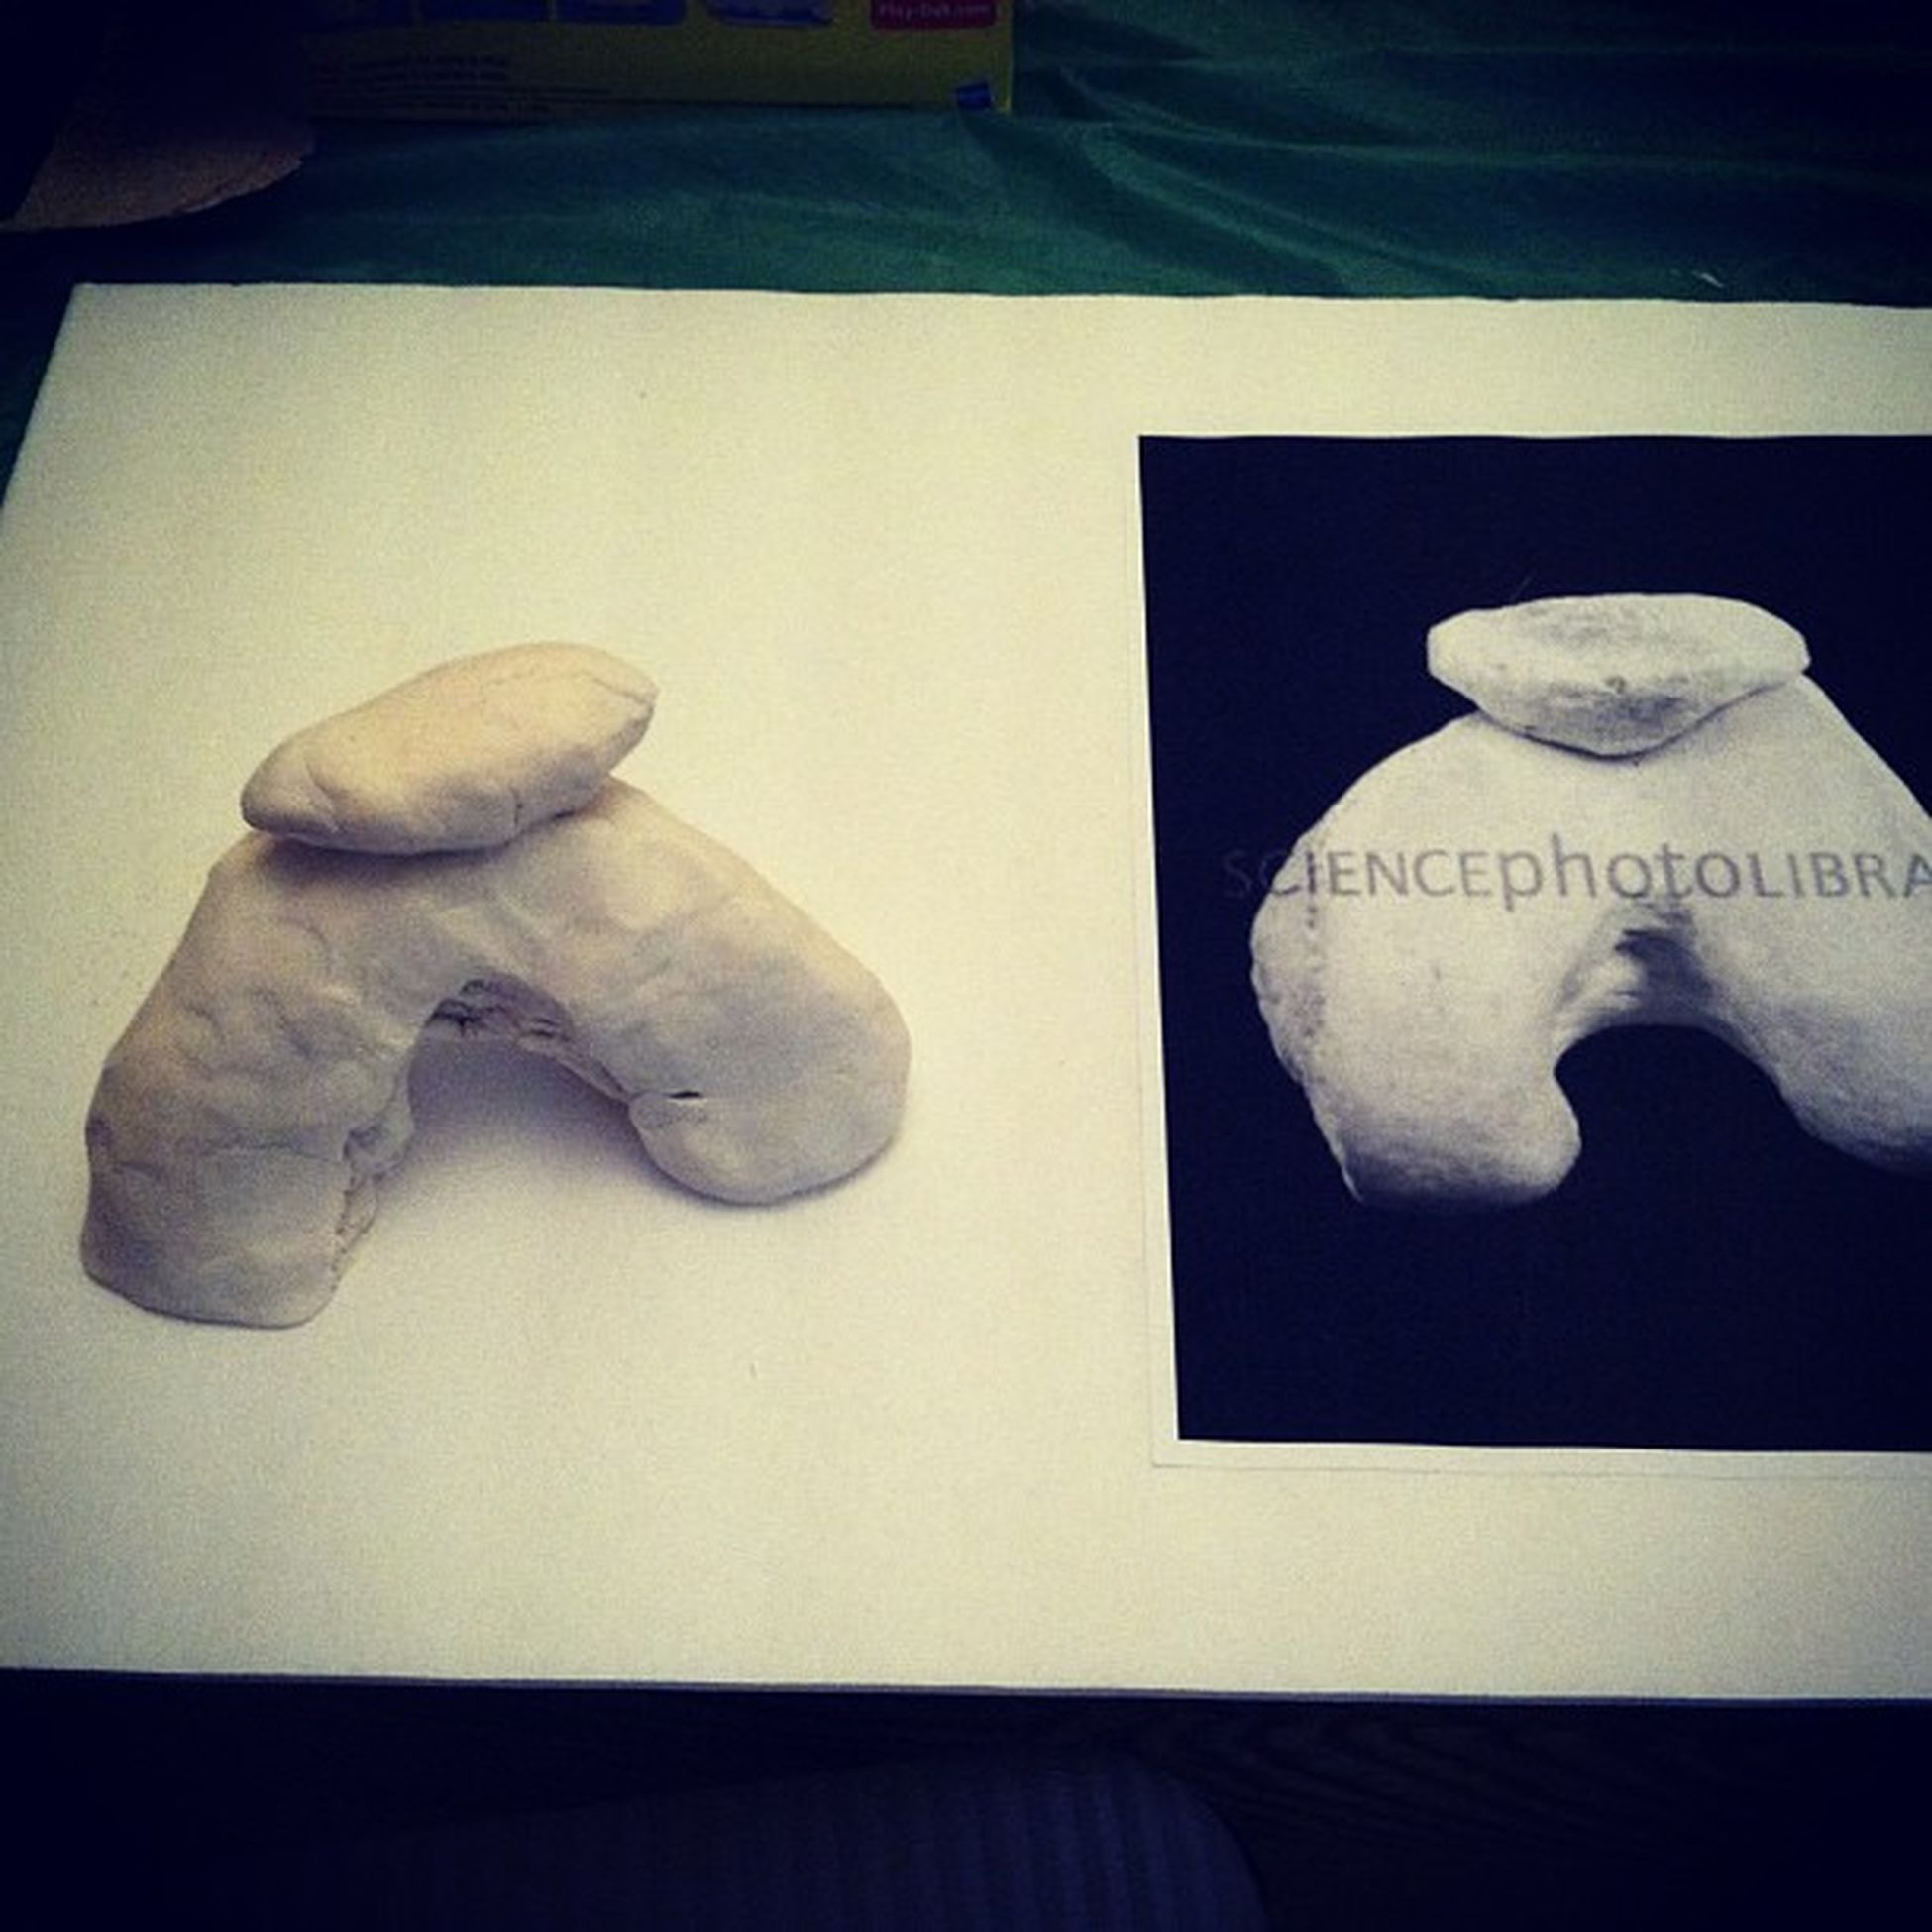 One of the manny projects I have to do for school. Schoolprojects Femur Patella